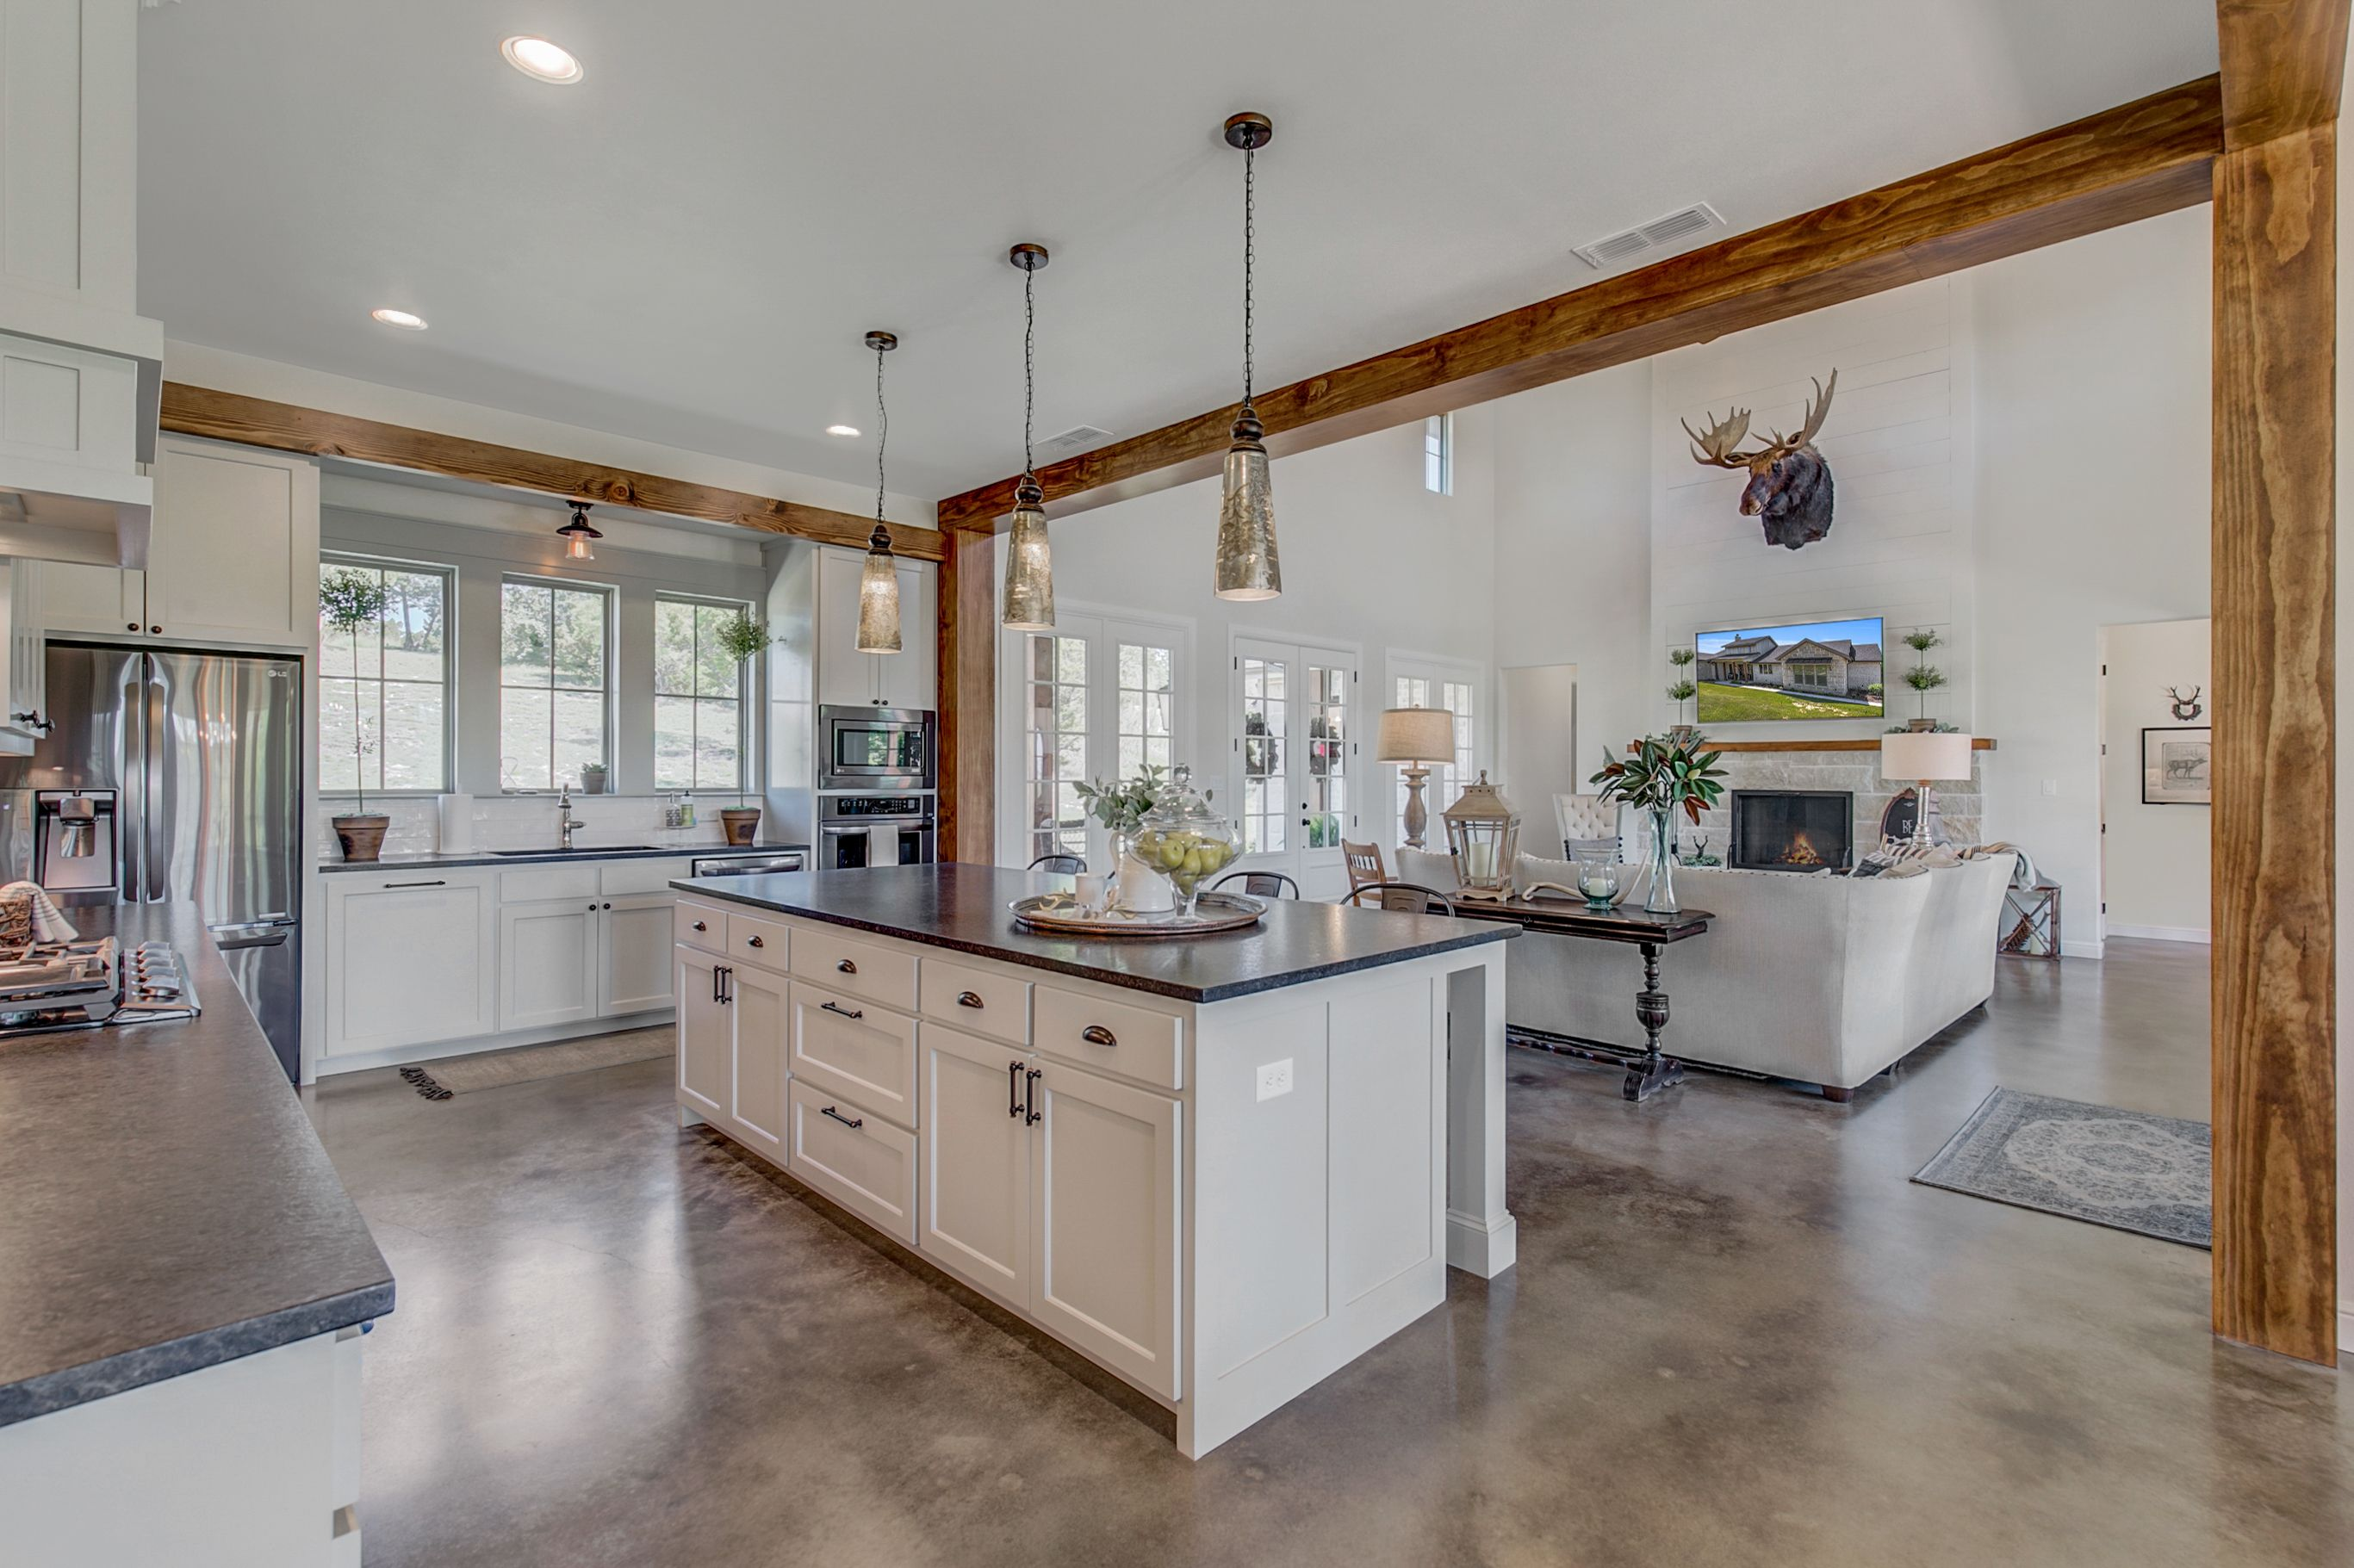 30+ Farmhouse stained concrete floors ideas in 2021